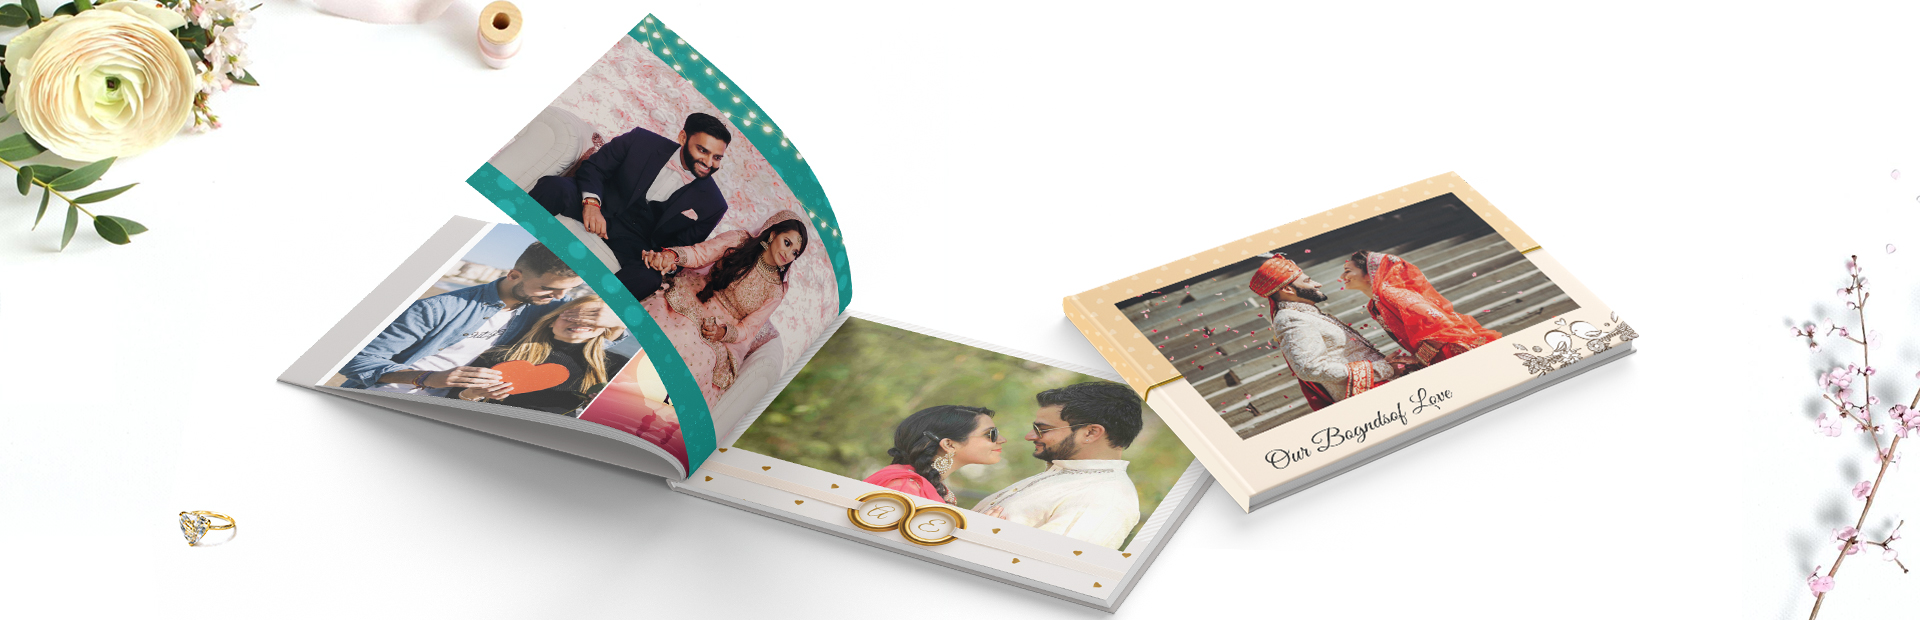 Eternally Engaged Photo Books Online